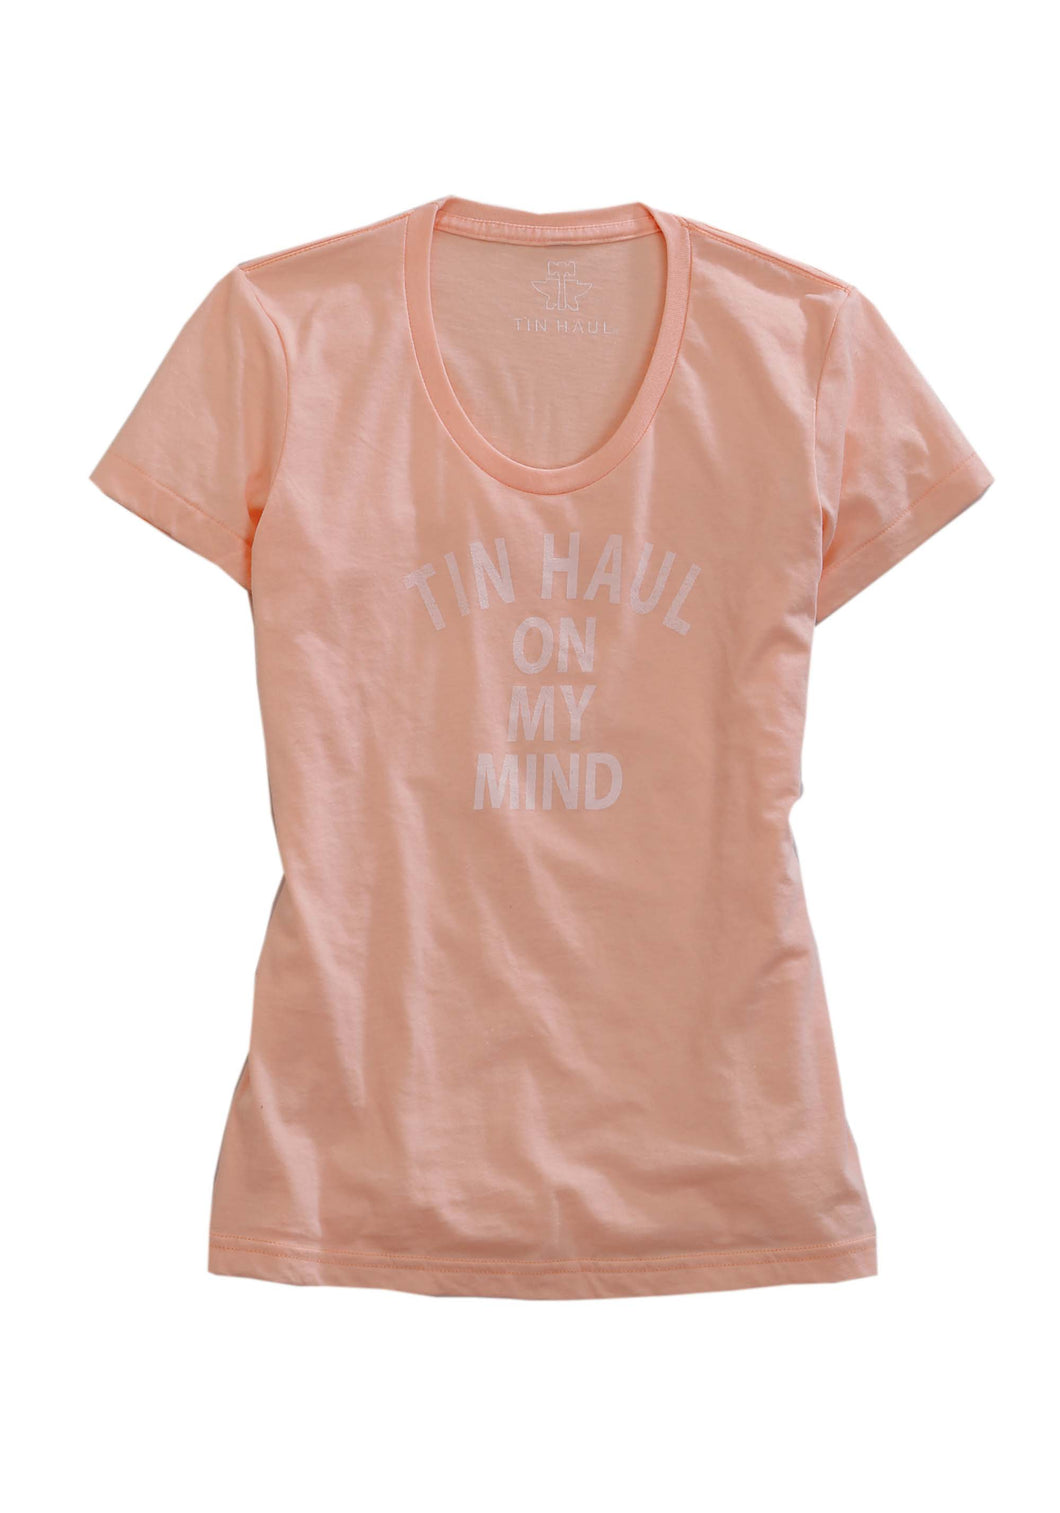 Tin Haul Gal's T-shirt Collection Tinhaul Womens Short Sleeve Shirt Scoop Neck Tee Wtin Haul On My Mind